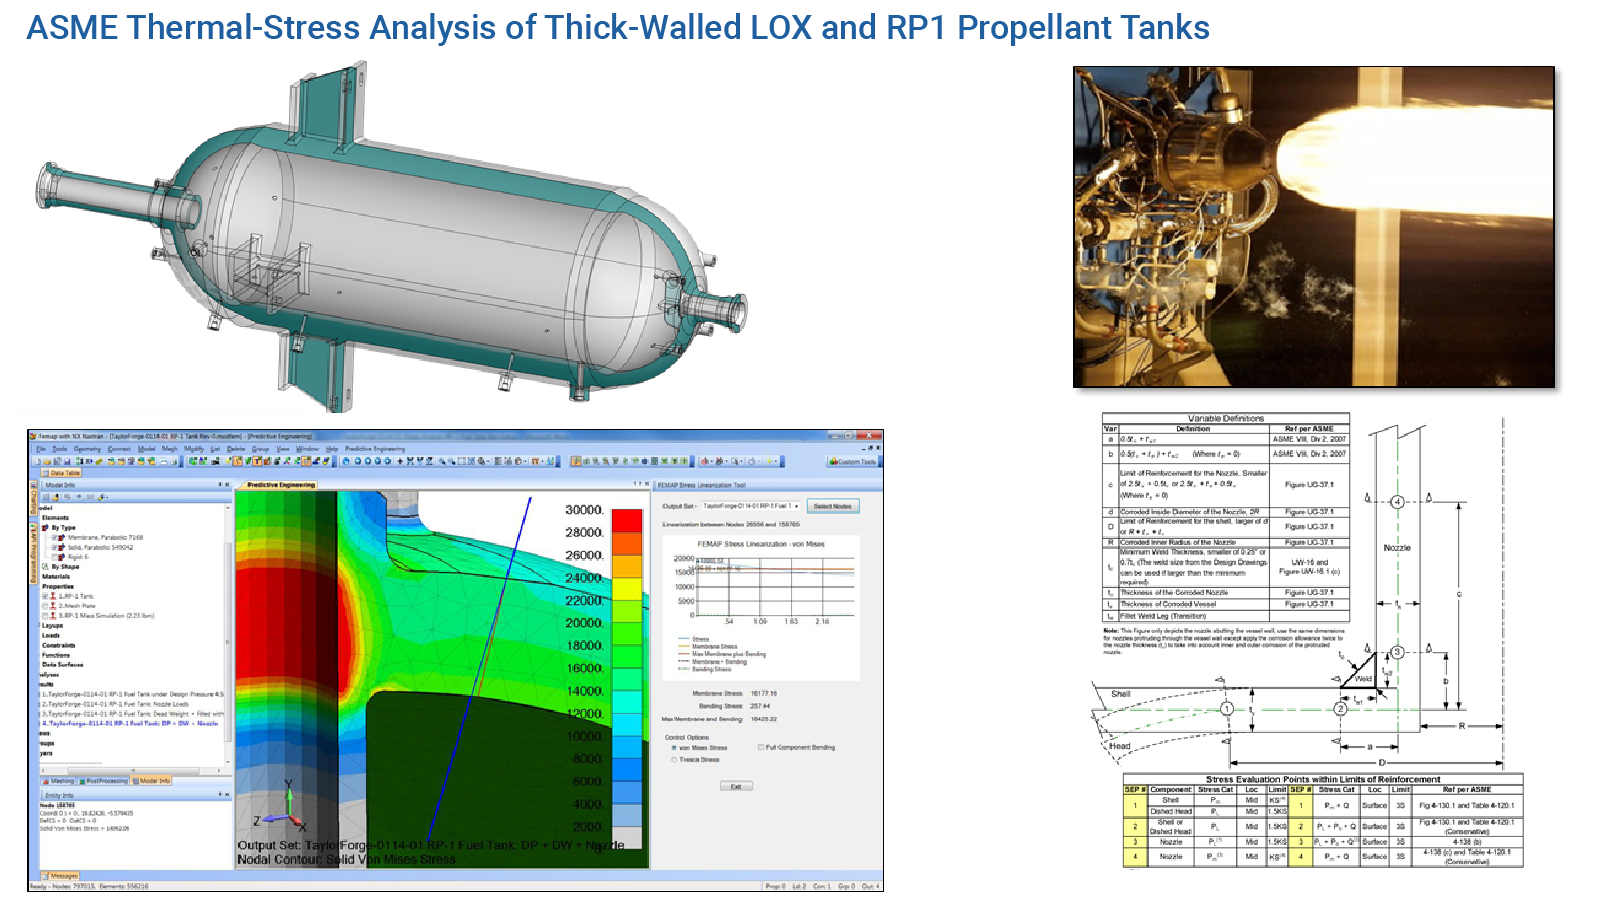 ASME Thermal-Stress Analysis of Thick-Walled LOX and RP1 Propellant Tanks